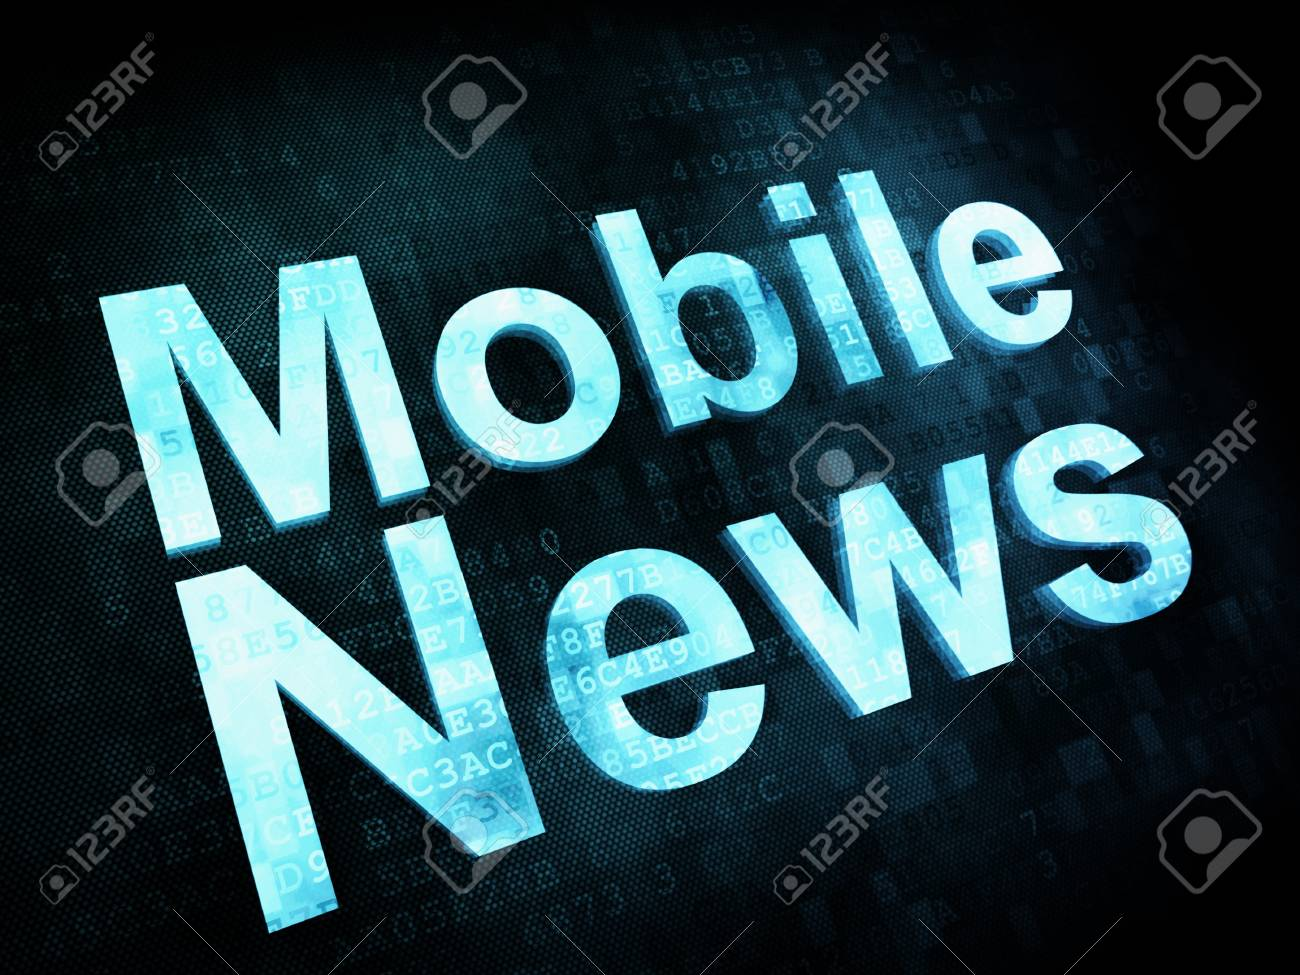 News and press concept: pixelated words Mobile News on digital screen, 3d render Stock Photo - 14375529